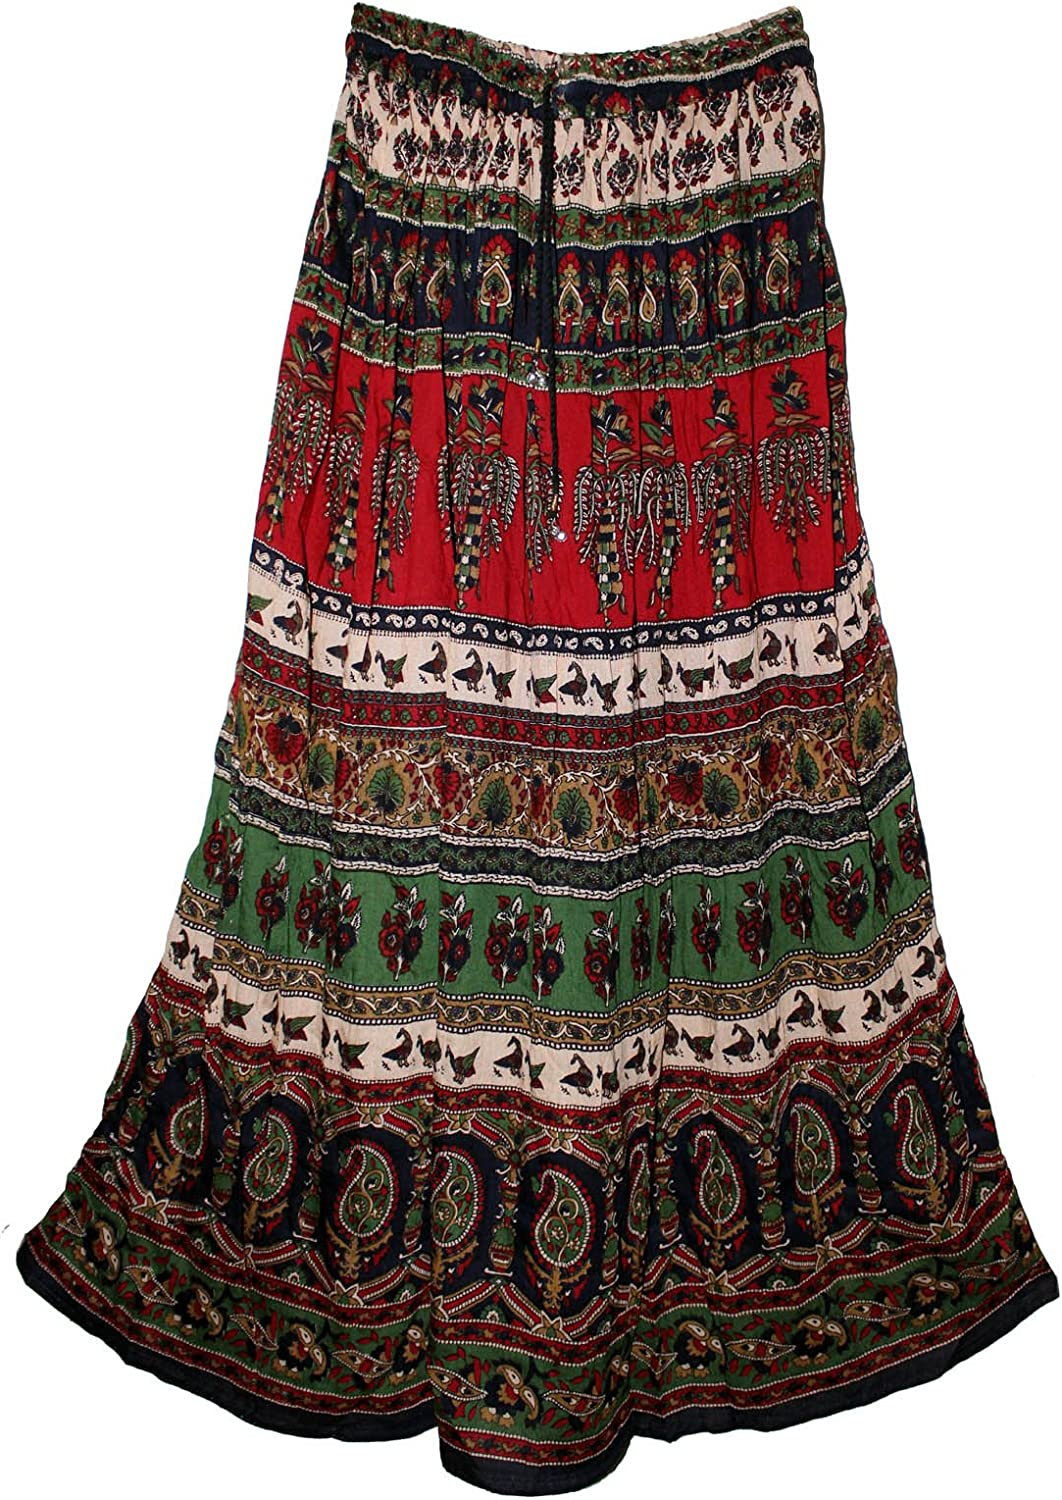 Fashion of India Womens Indian Crinkle Broomstick Gypsy Long Skirt